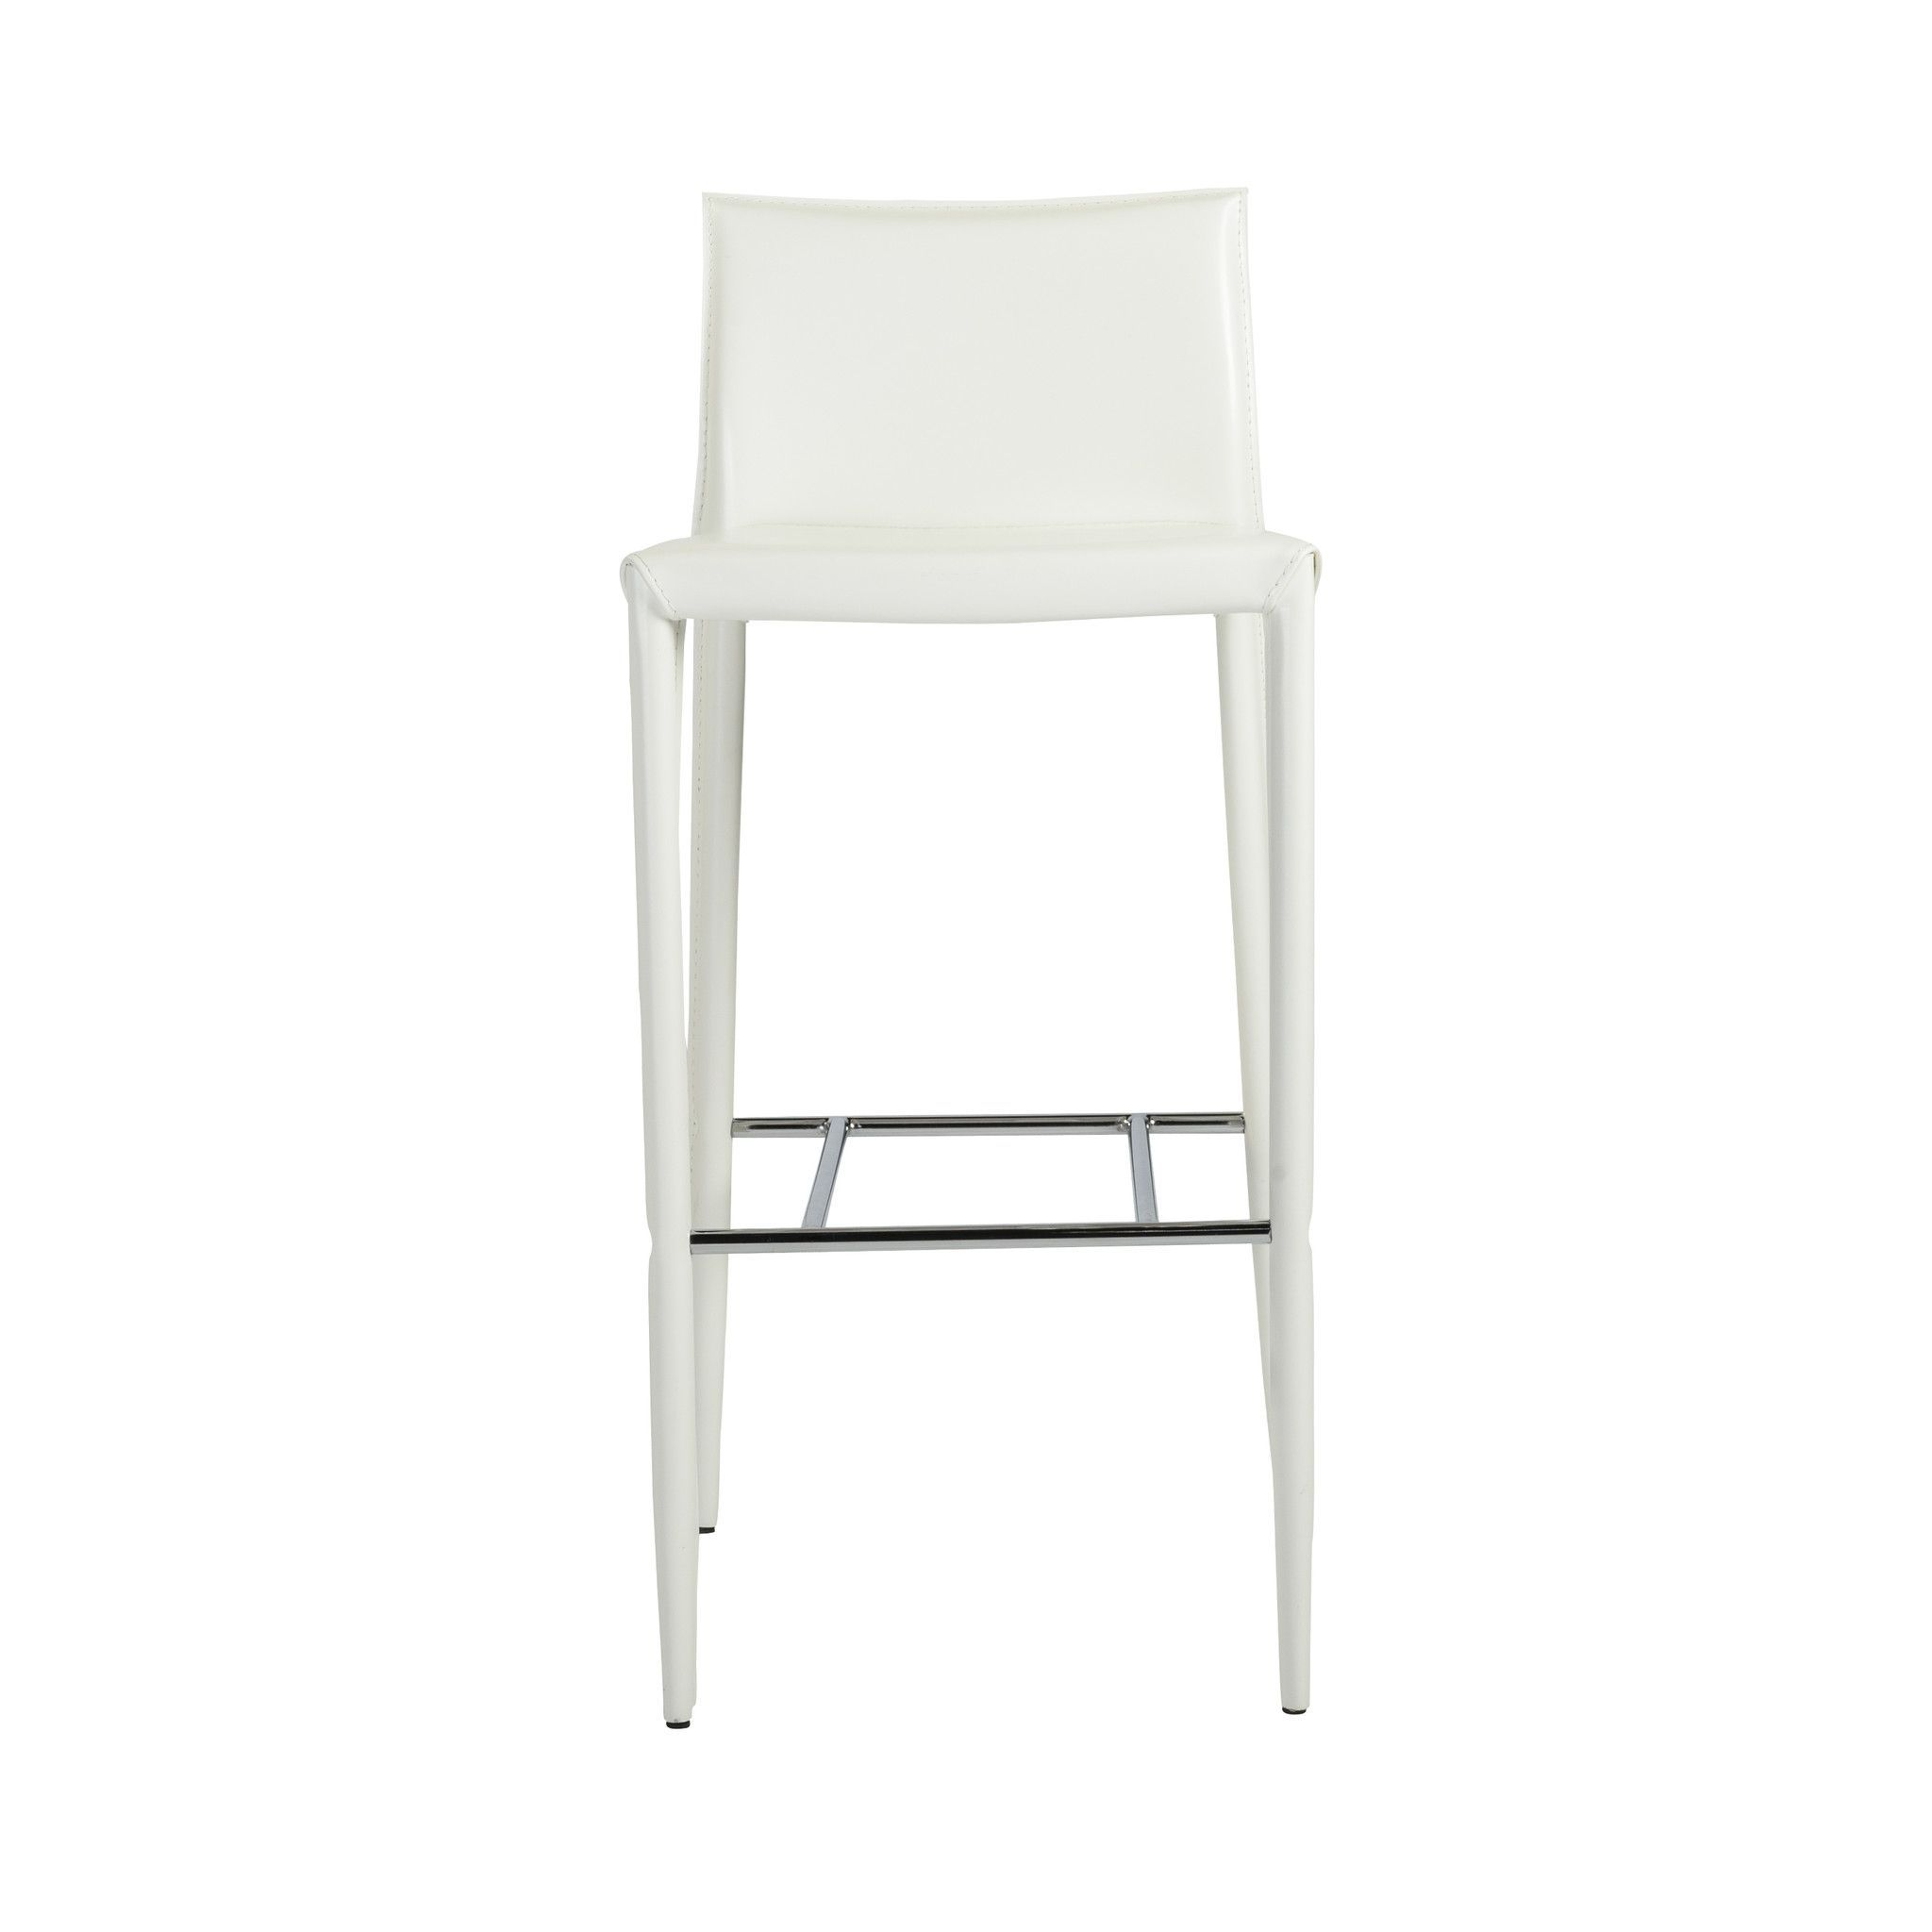 Shen Bar Stool in White with Chrome Footrest (Set of 2)